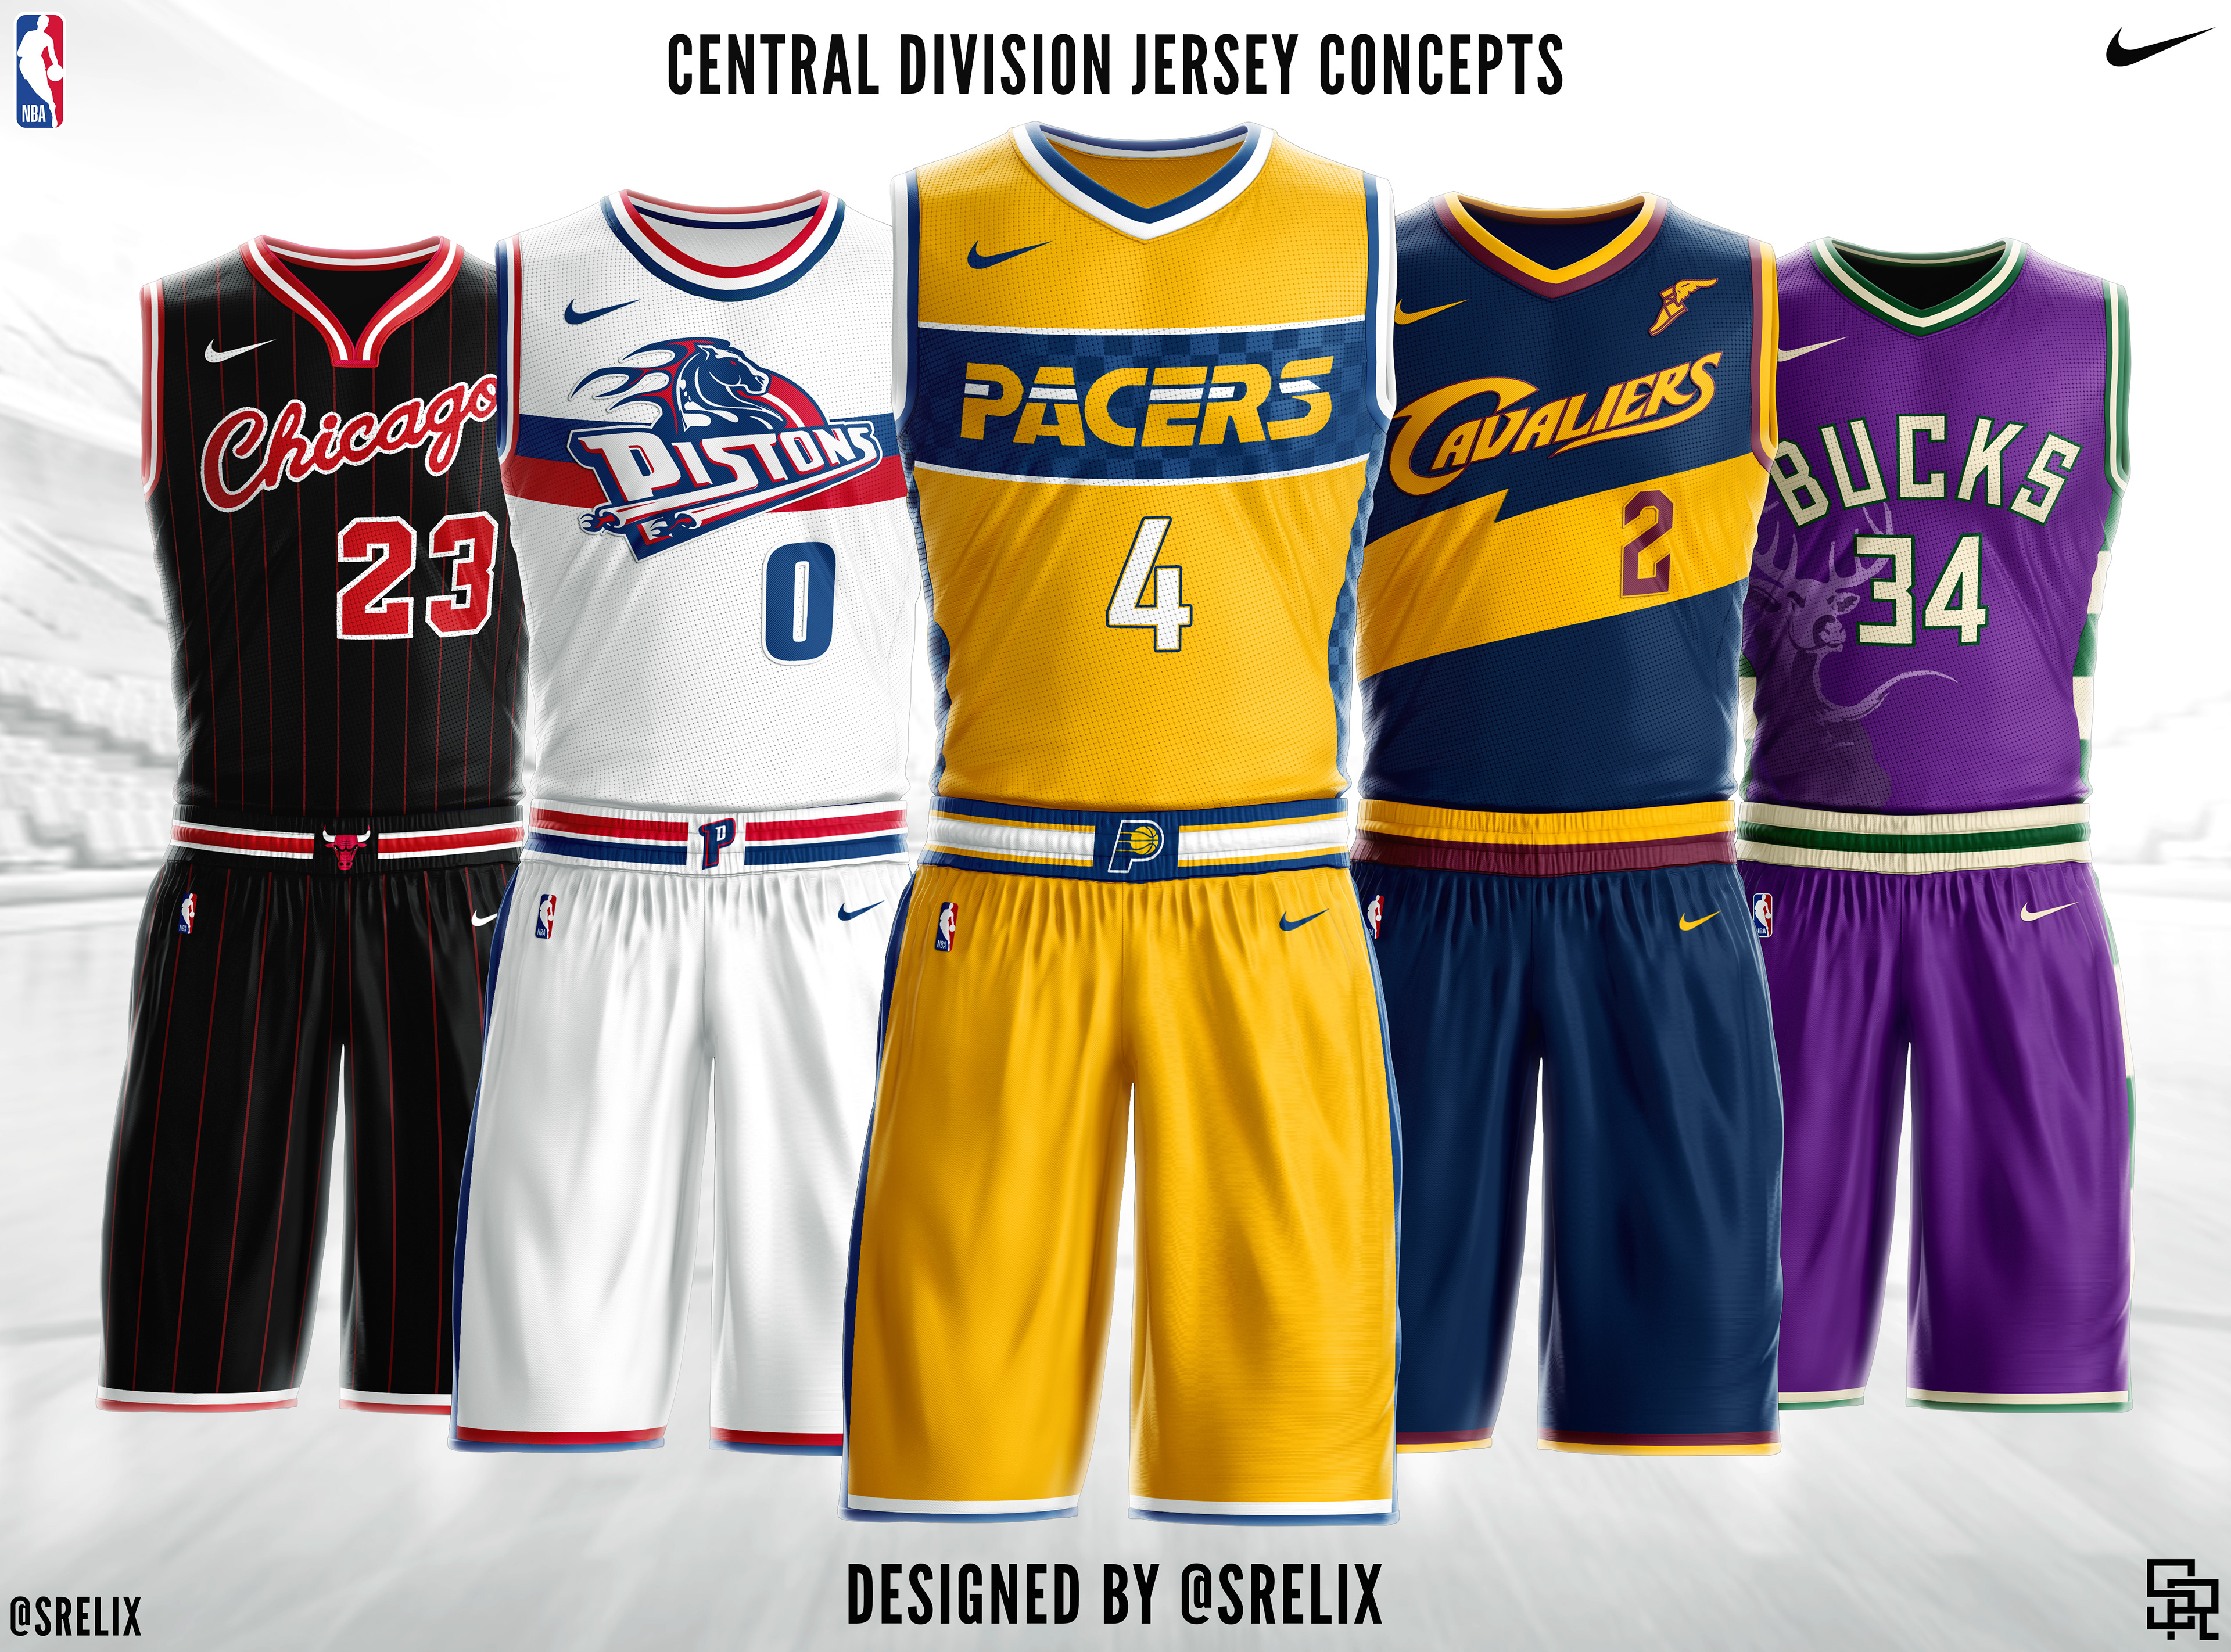 NBA jersey concepts that I designed. Check them out on Instagram  srelix.  Powered by www.sportstemplates.net 911925512282